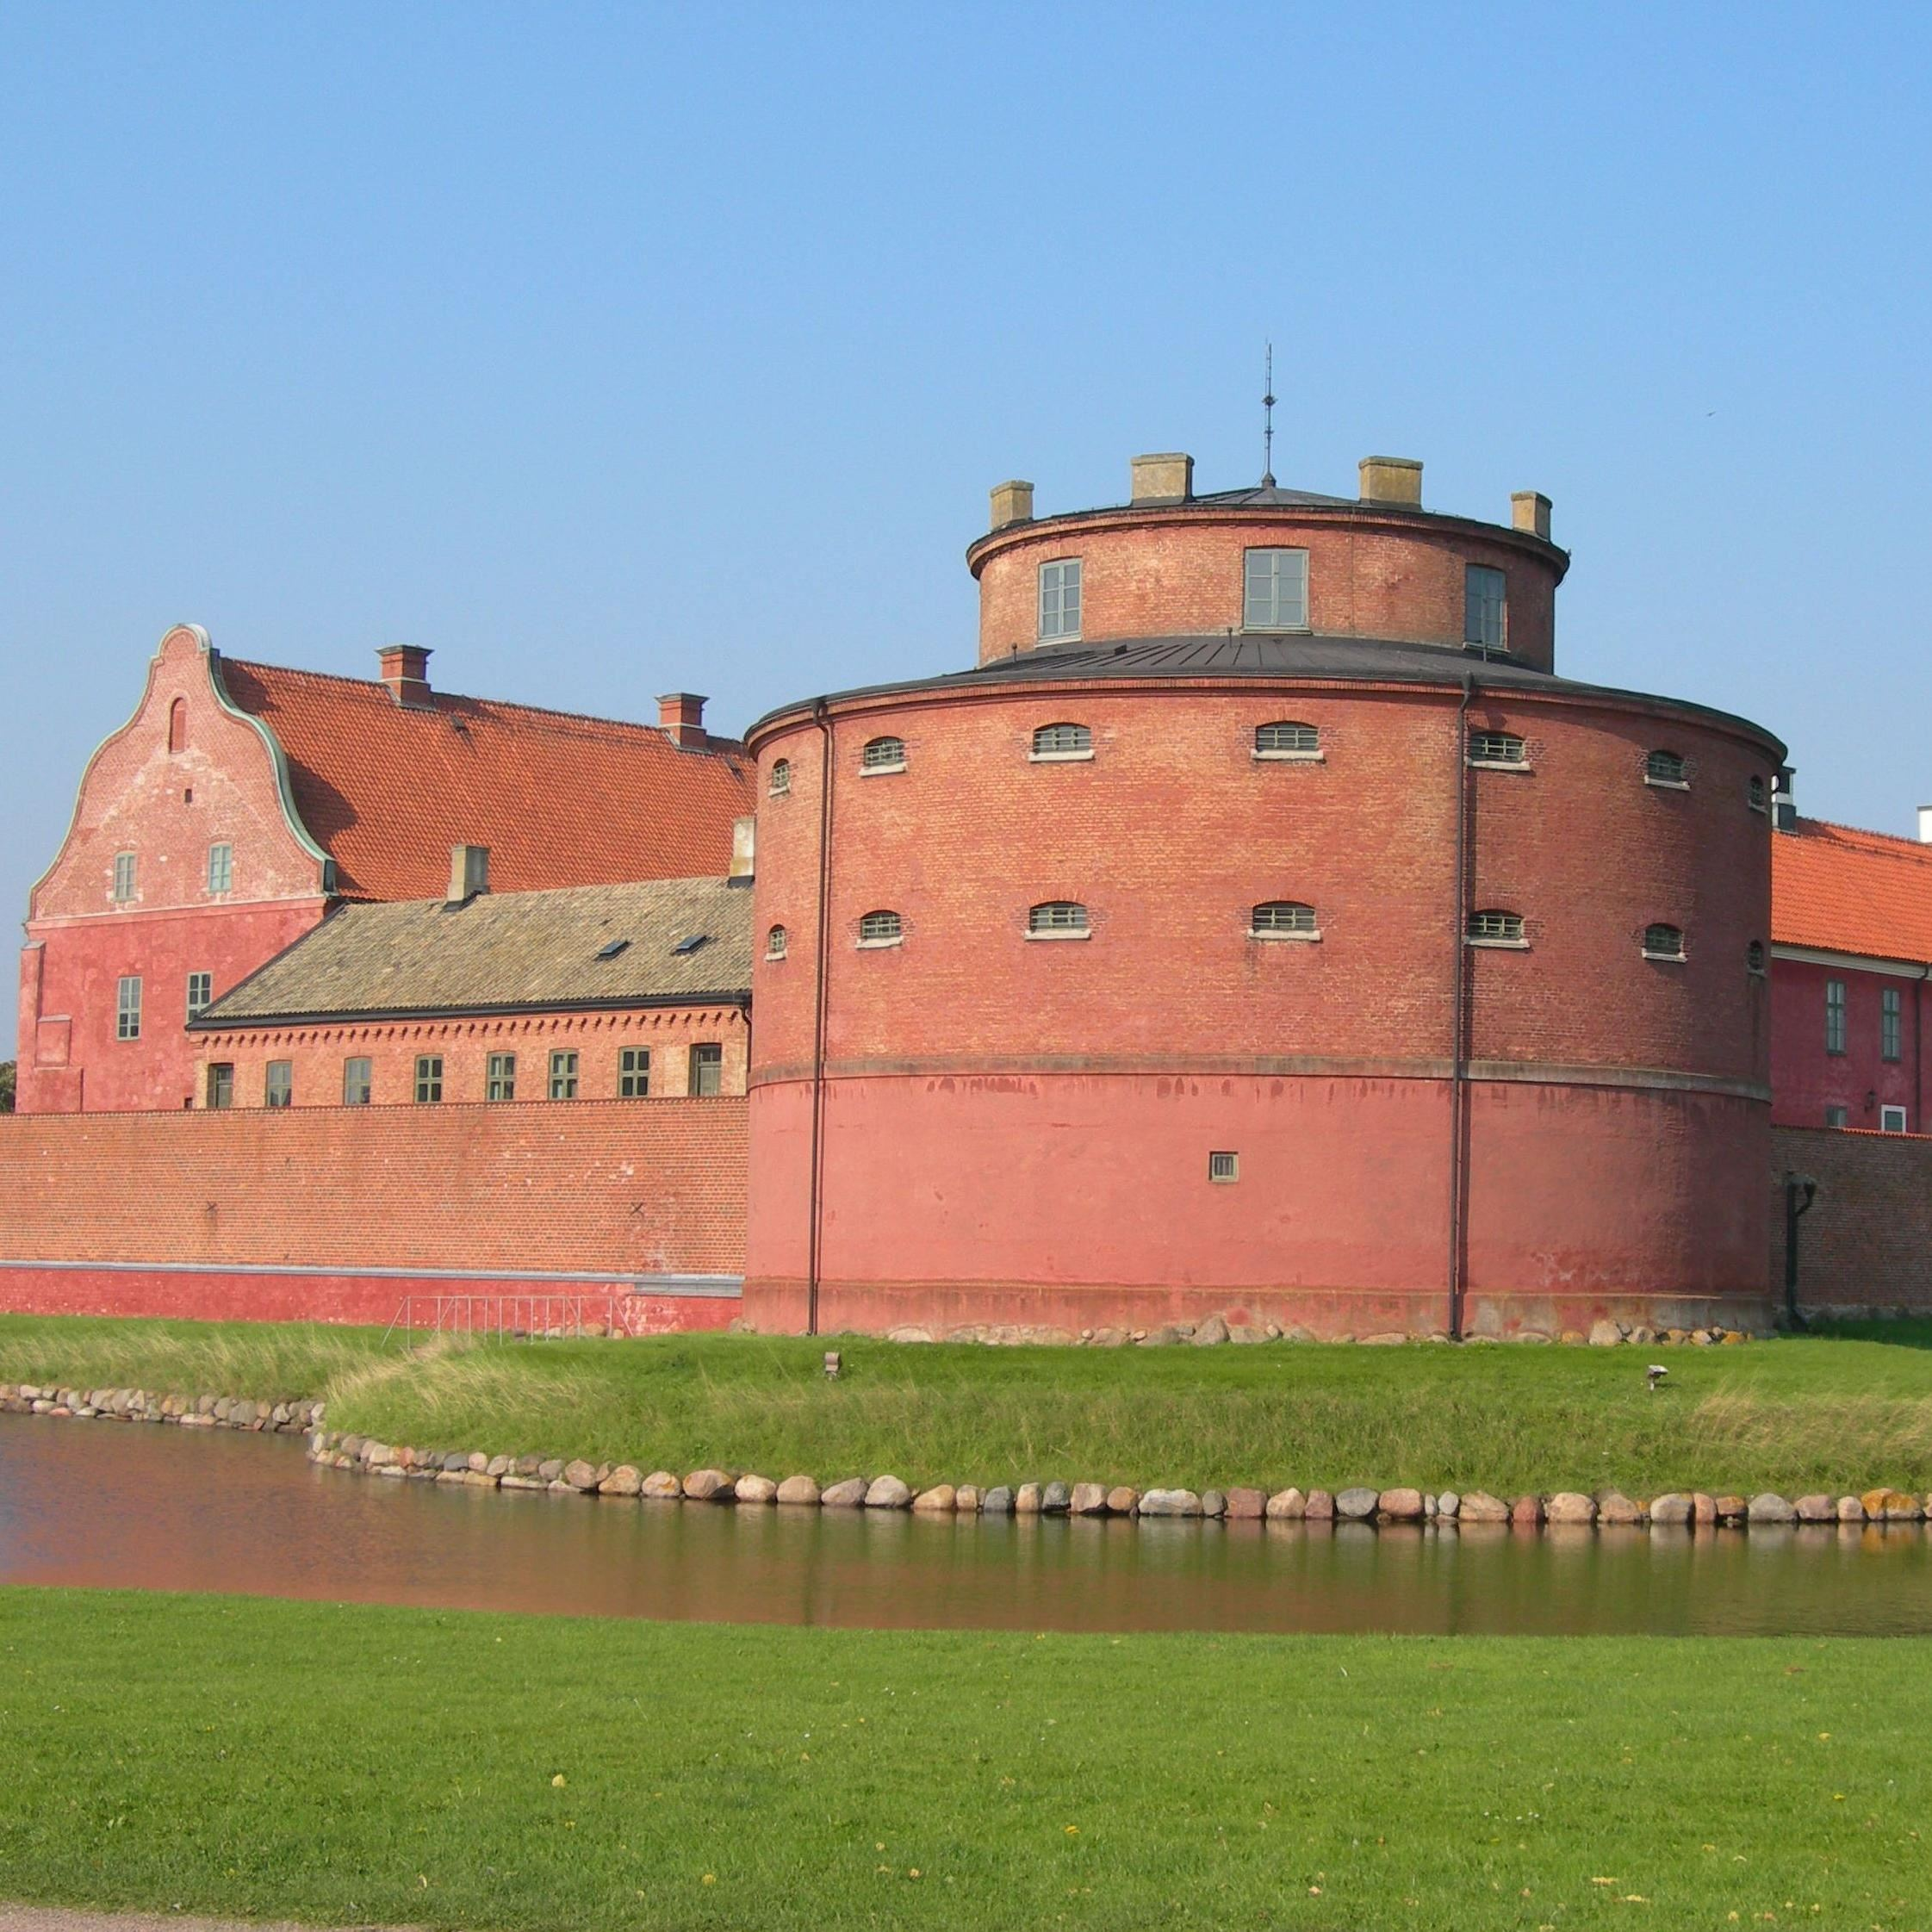 Foto: Landskrona stad, The Landskrona Fortress, The Citadel